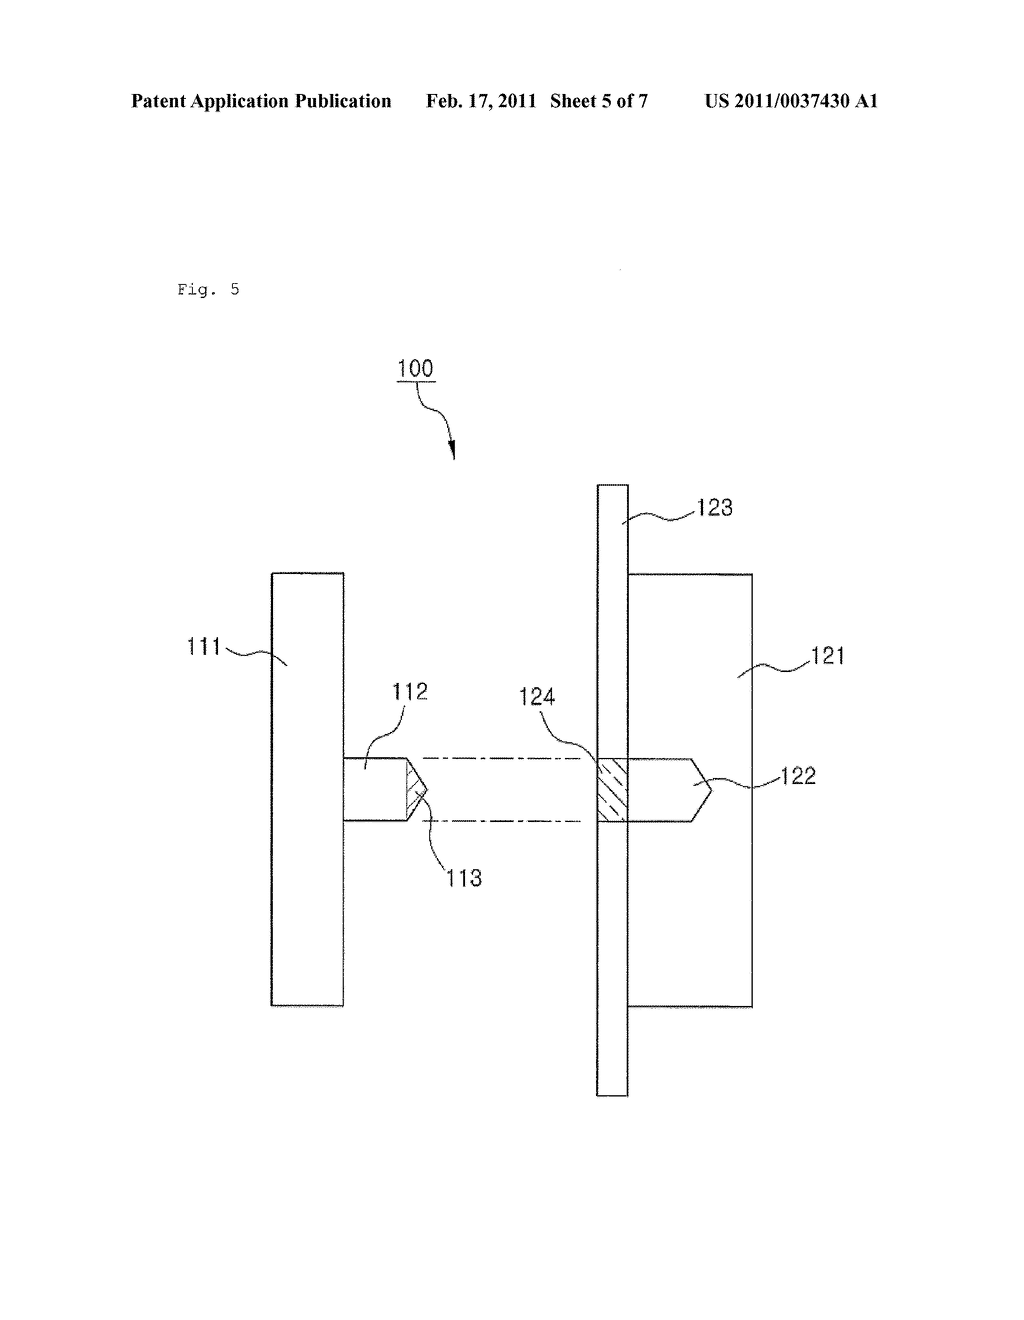 Safety Switch for Secondary Battery for Electric Vehicle and Charging Discharging System for Secondary Battery for Electric Vehicle Using the Same - diagram, schematic, and image 06